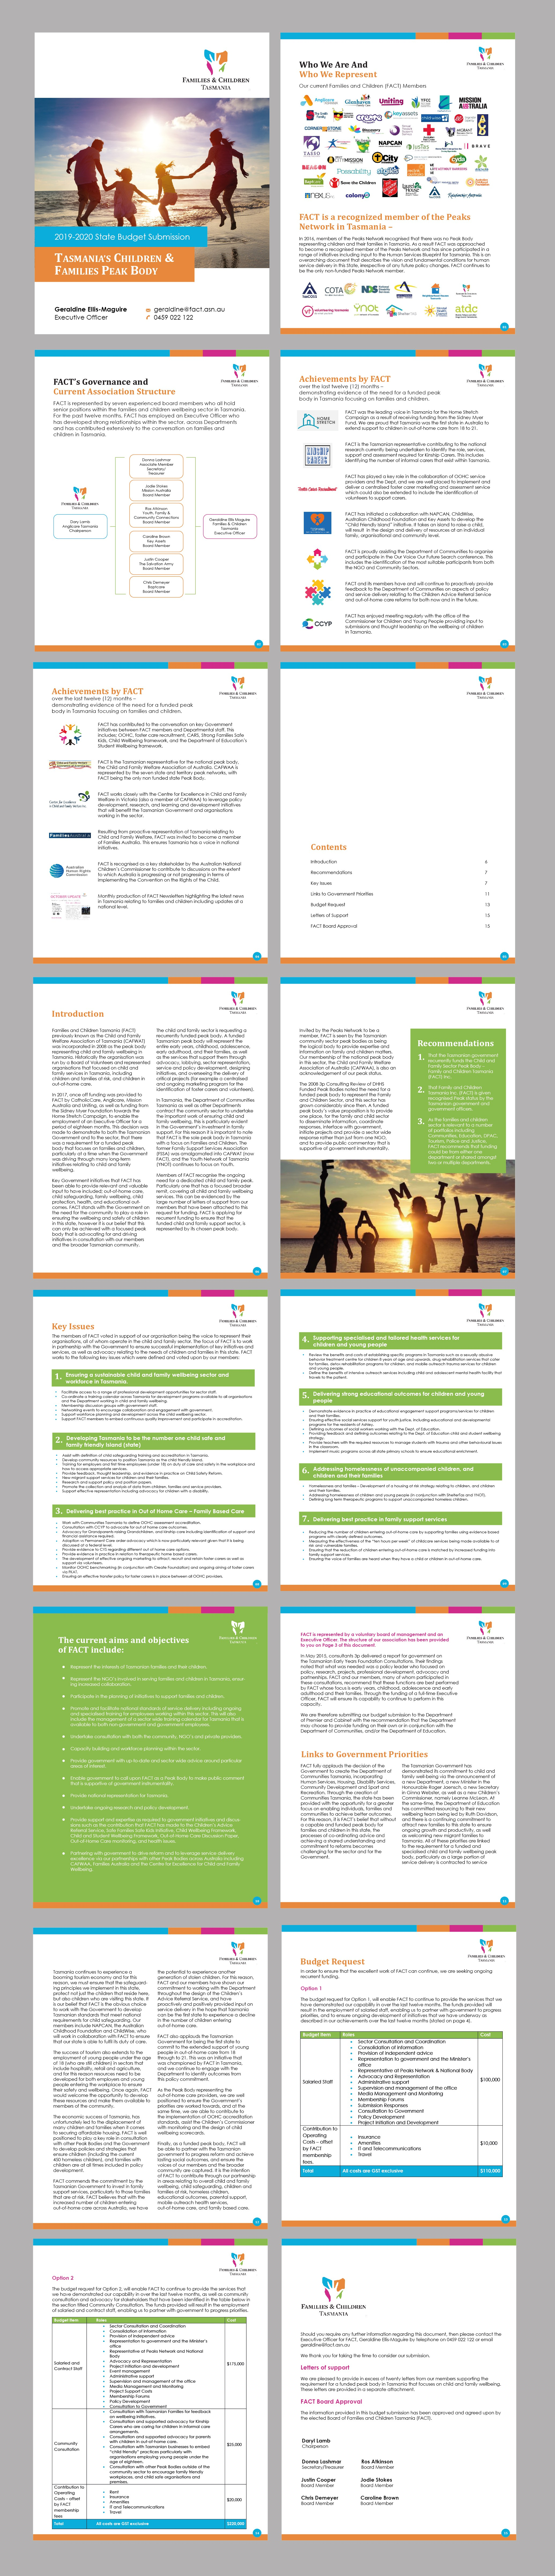 Desktop Publishing of a 15 page budget submission for the Tasmanian State Government